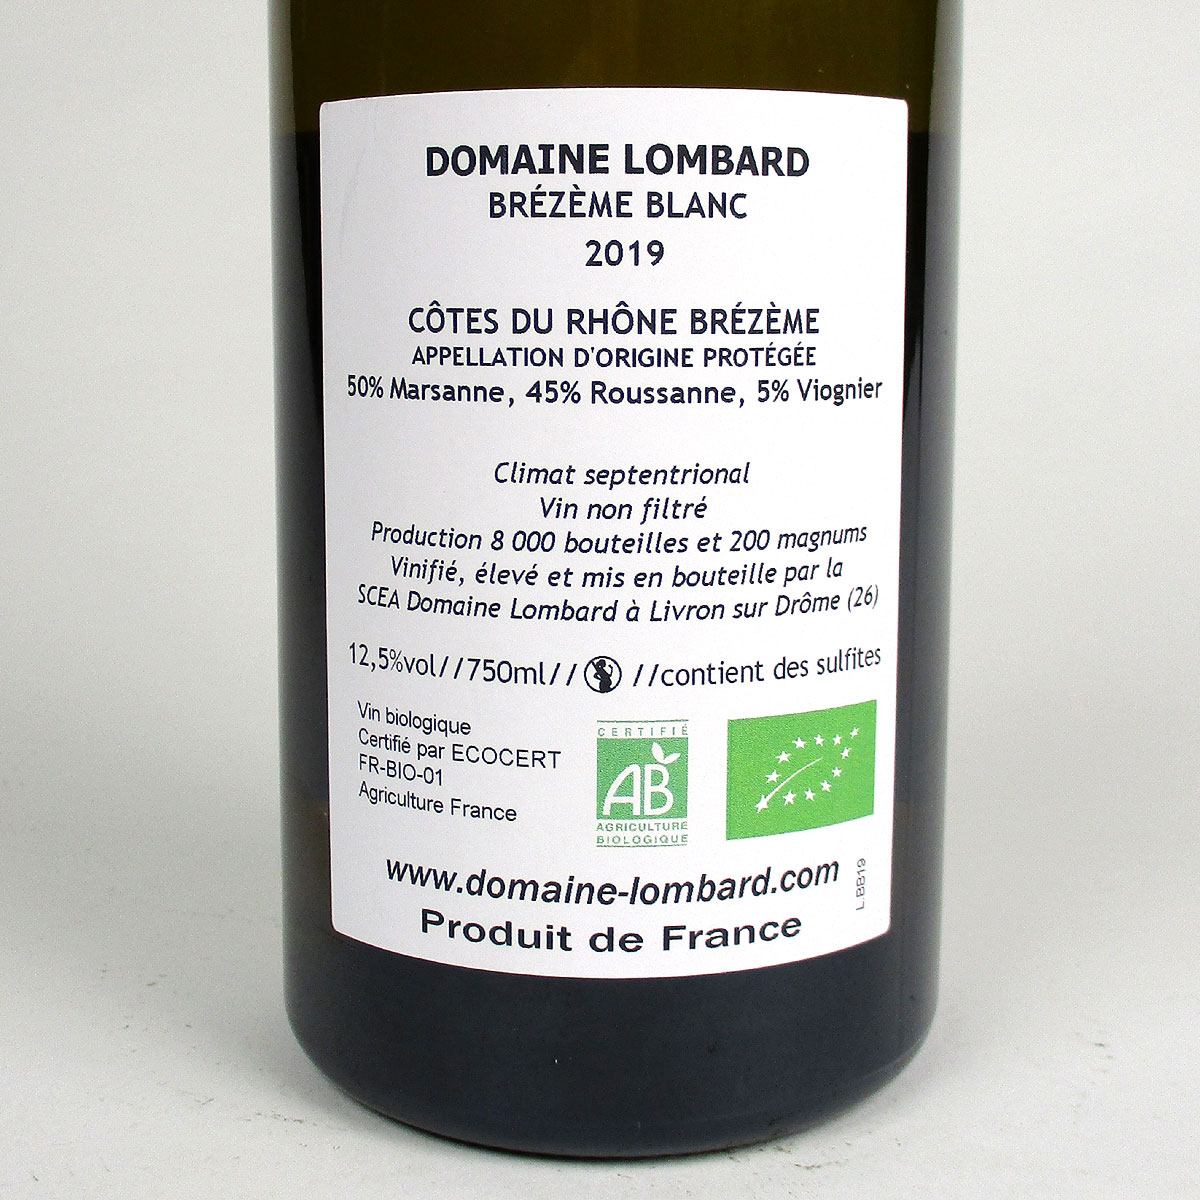 Brézème: Domaine Lombard Blanc 2019 - Bottle Rear Label